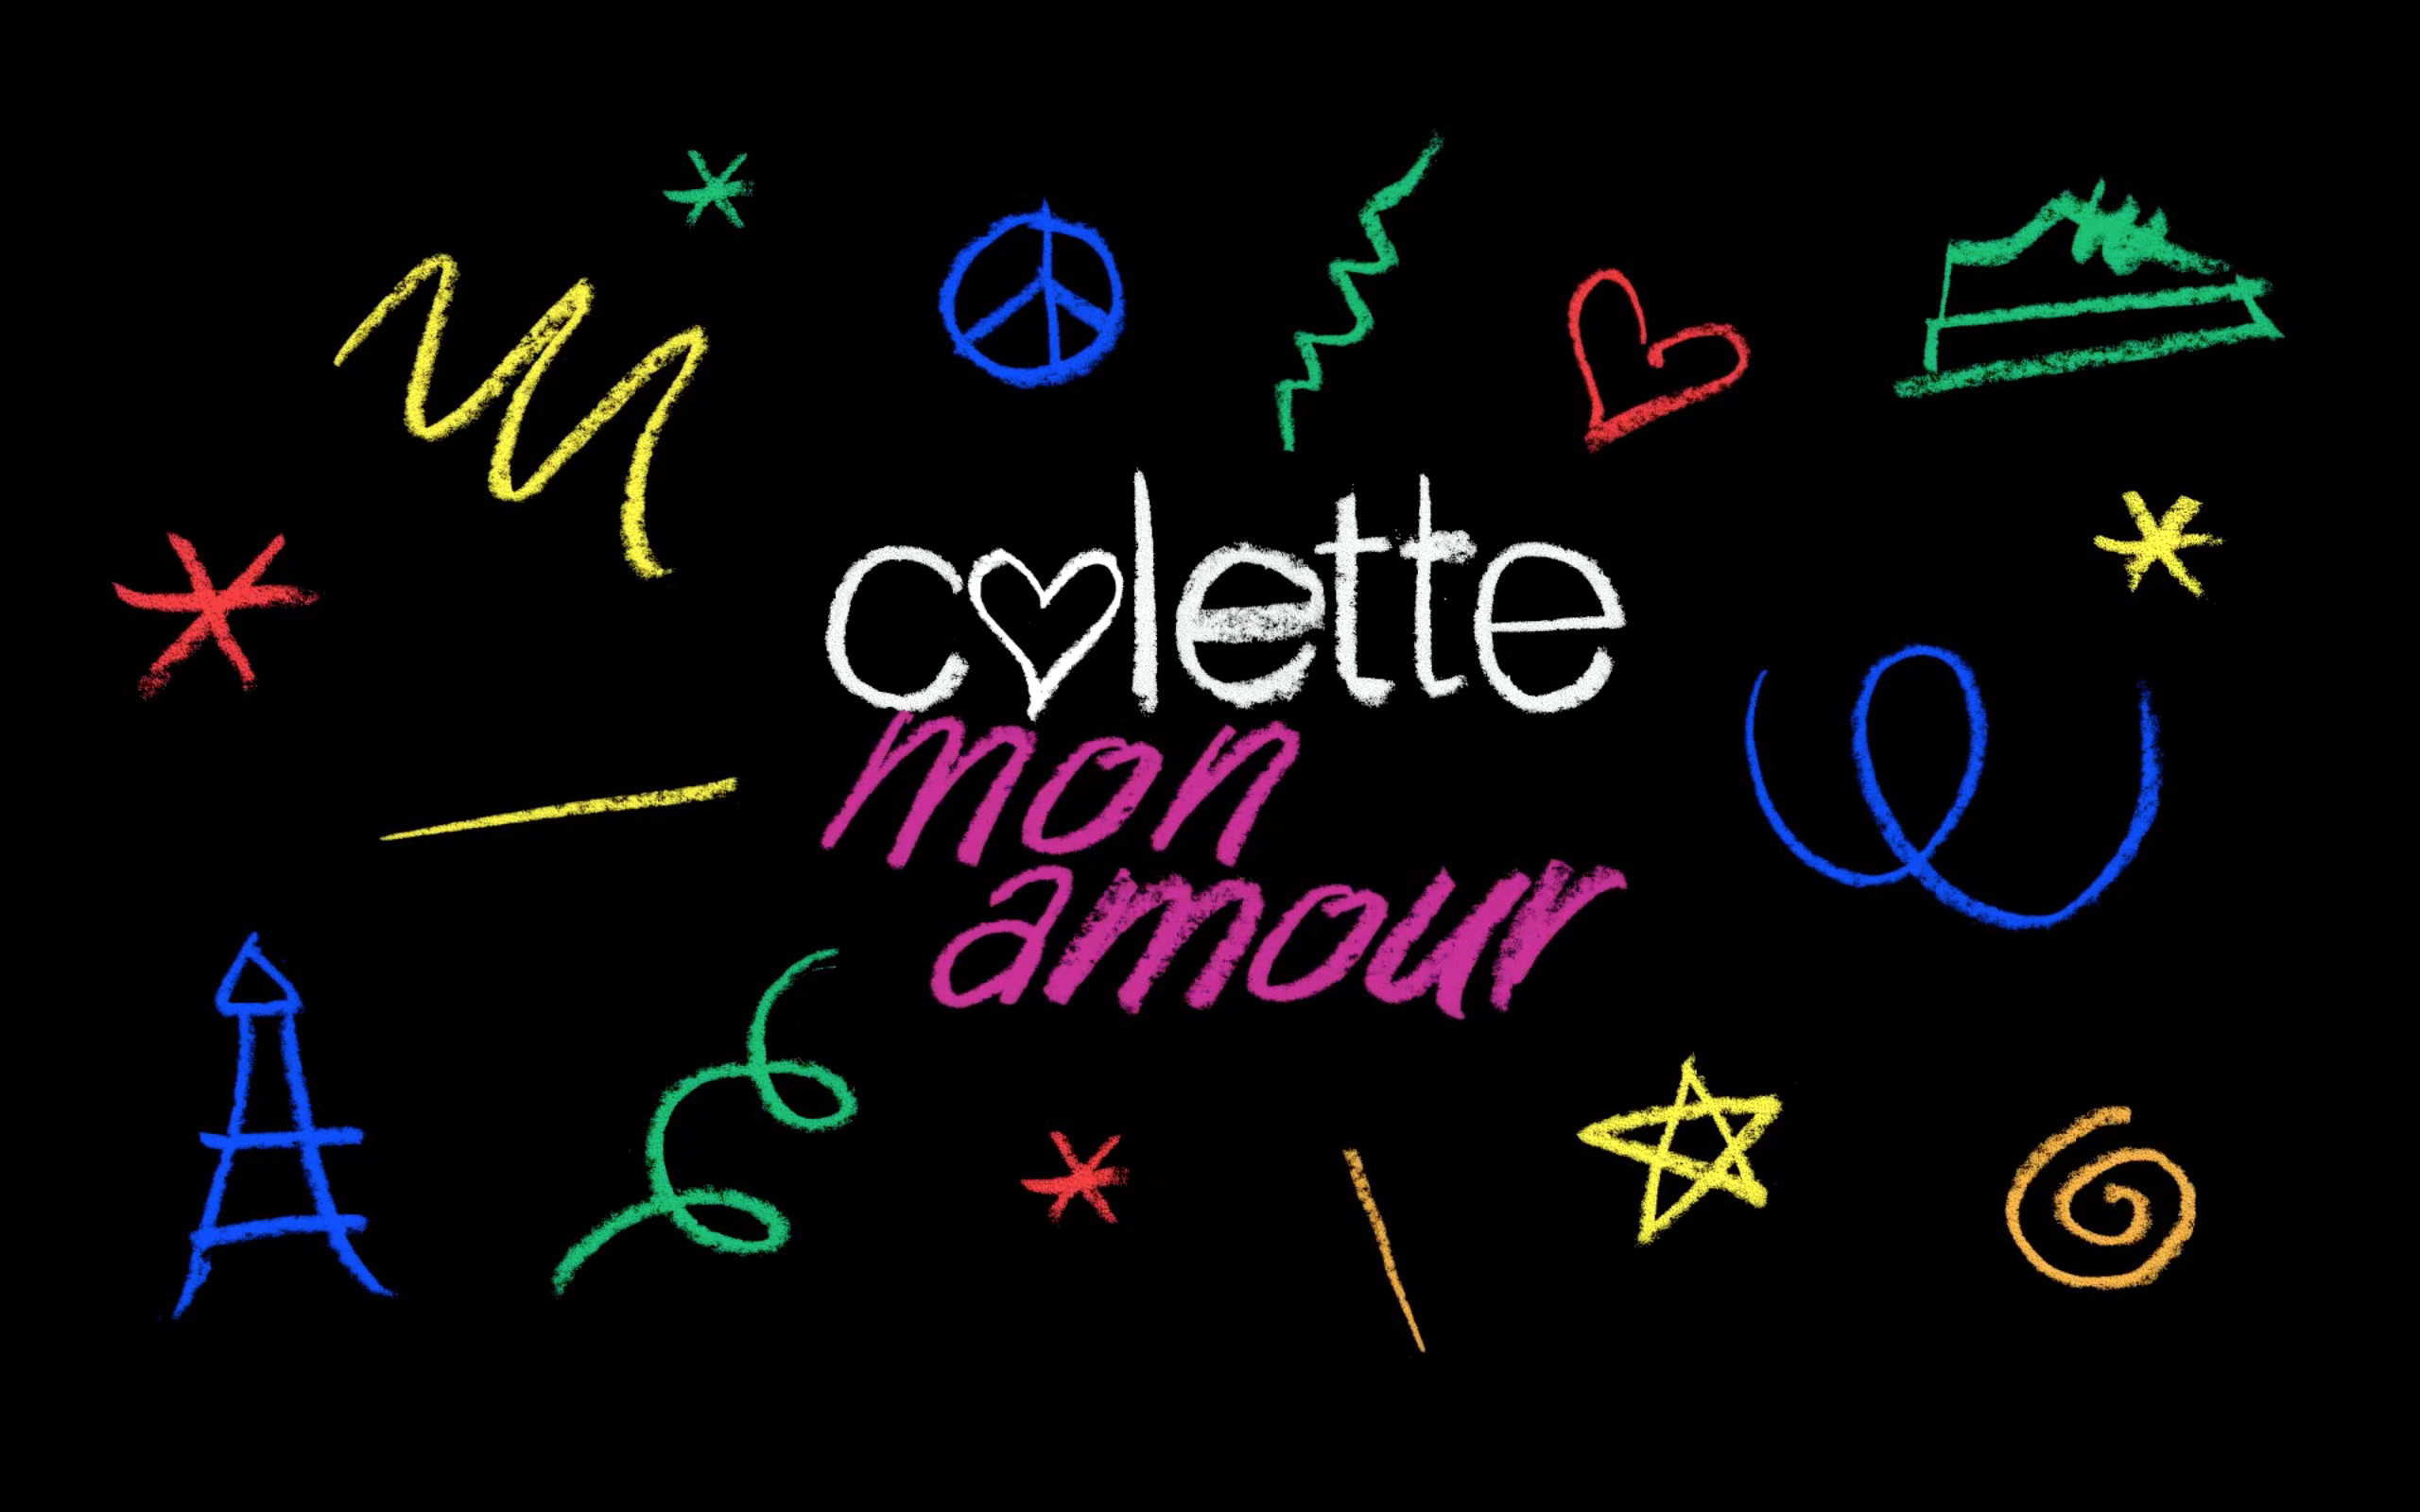 """Colette Mon Amour"" will be released in 2020"